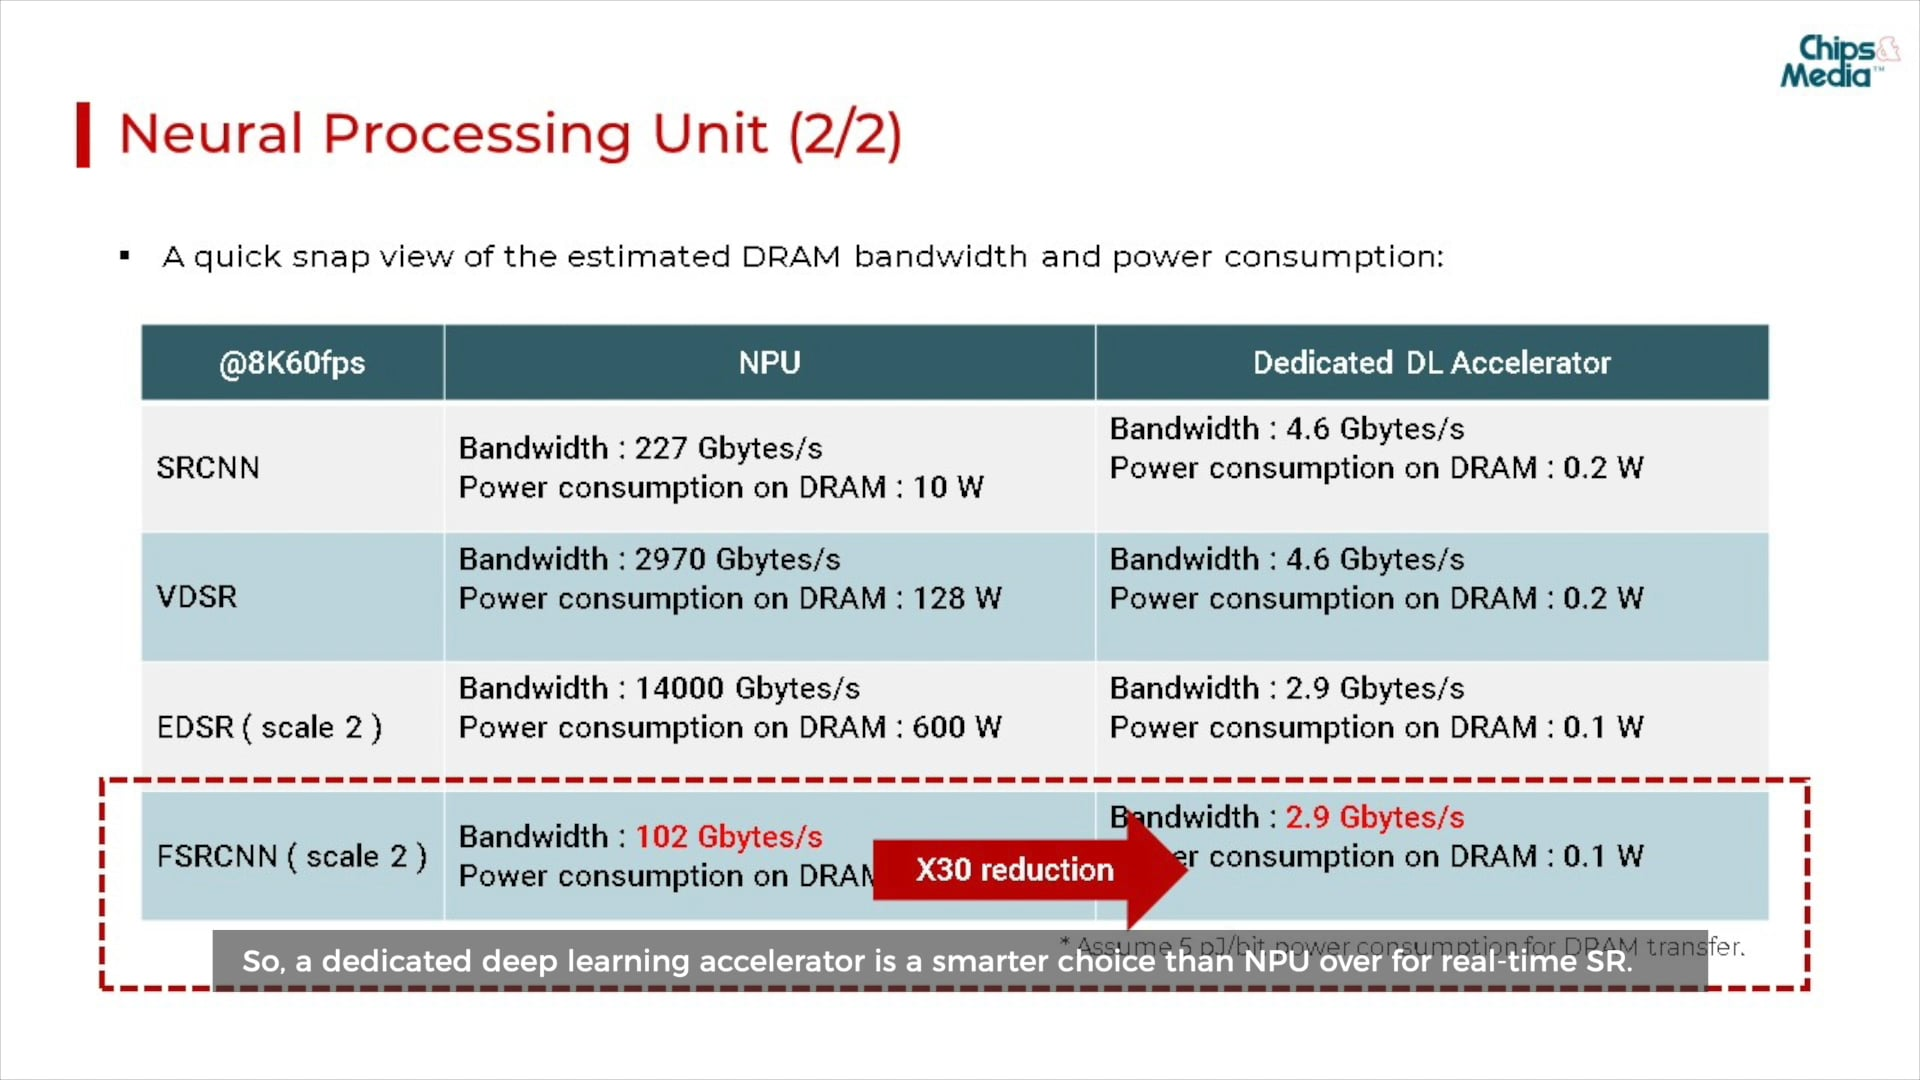 2020 Embedded Vision Summit: Why a dedicated HW accelerator is recommended for Super-resolution application in real-time